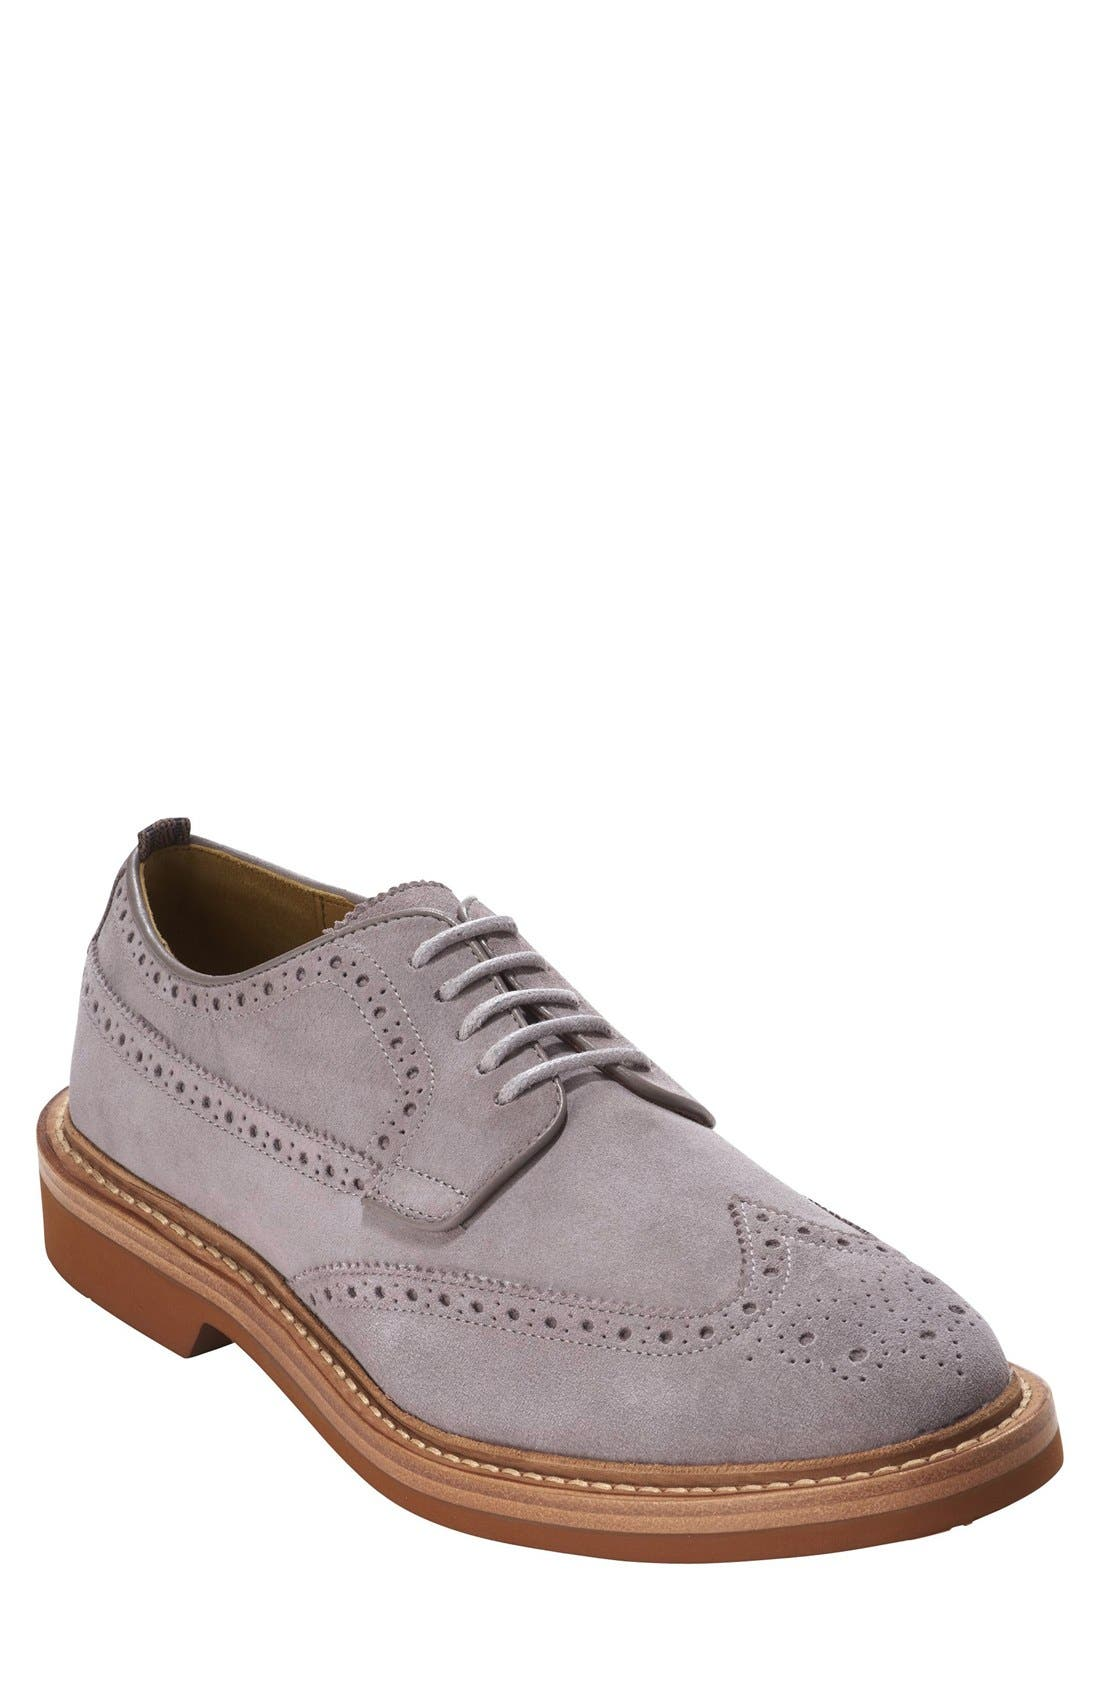 COLE HAAN & TODD SNYDER,                             'Hammond' Wingtip,                             Main thumbnail 1, color,                             025